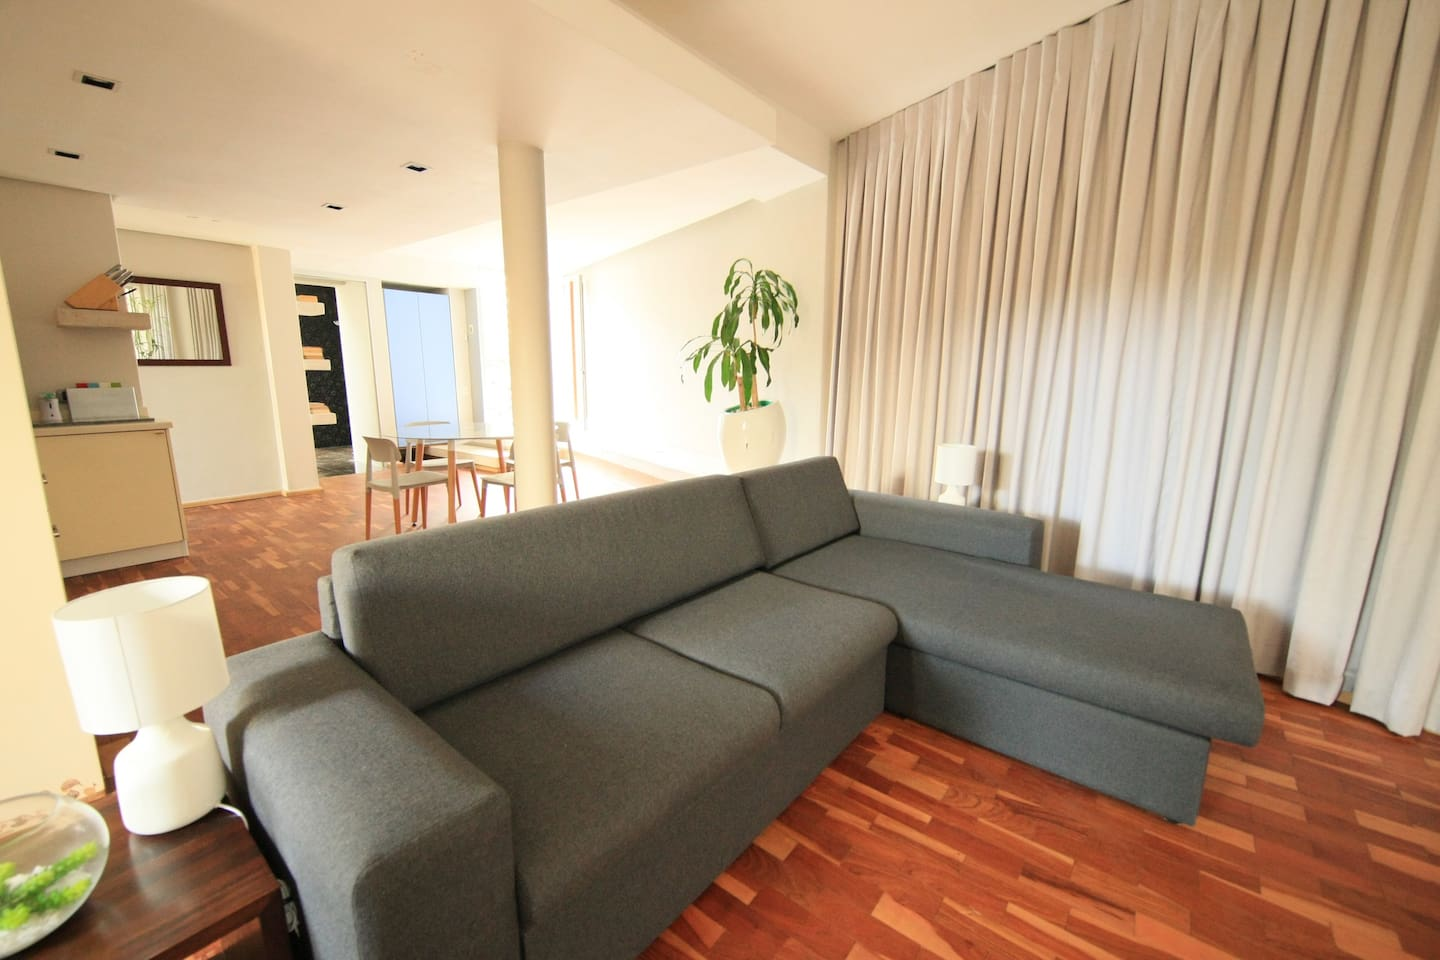 relax in our couch and day bed